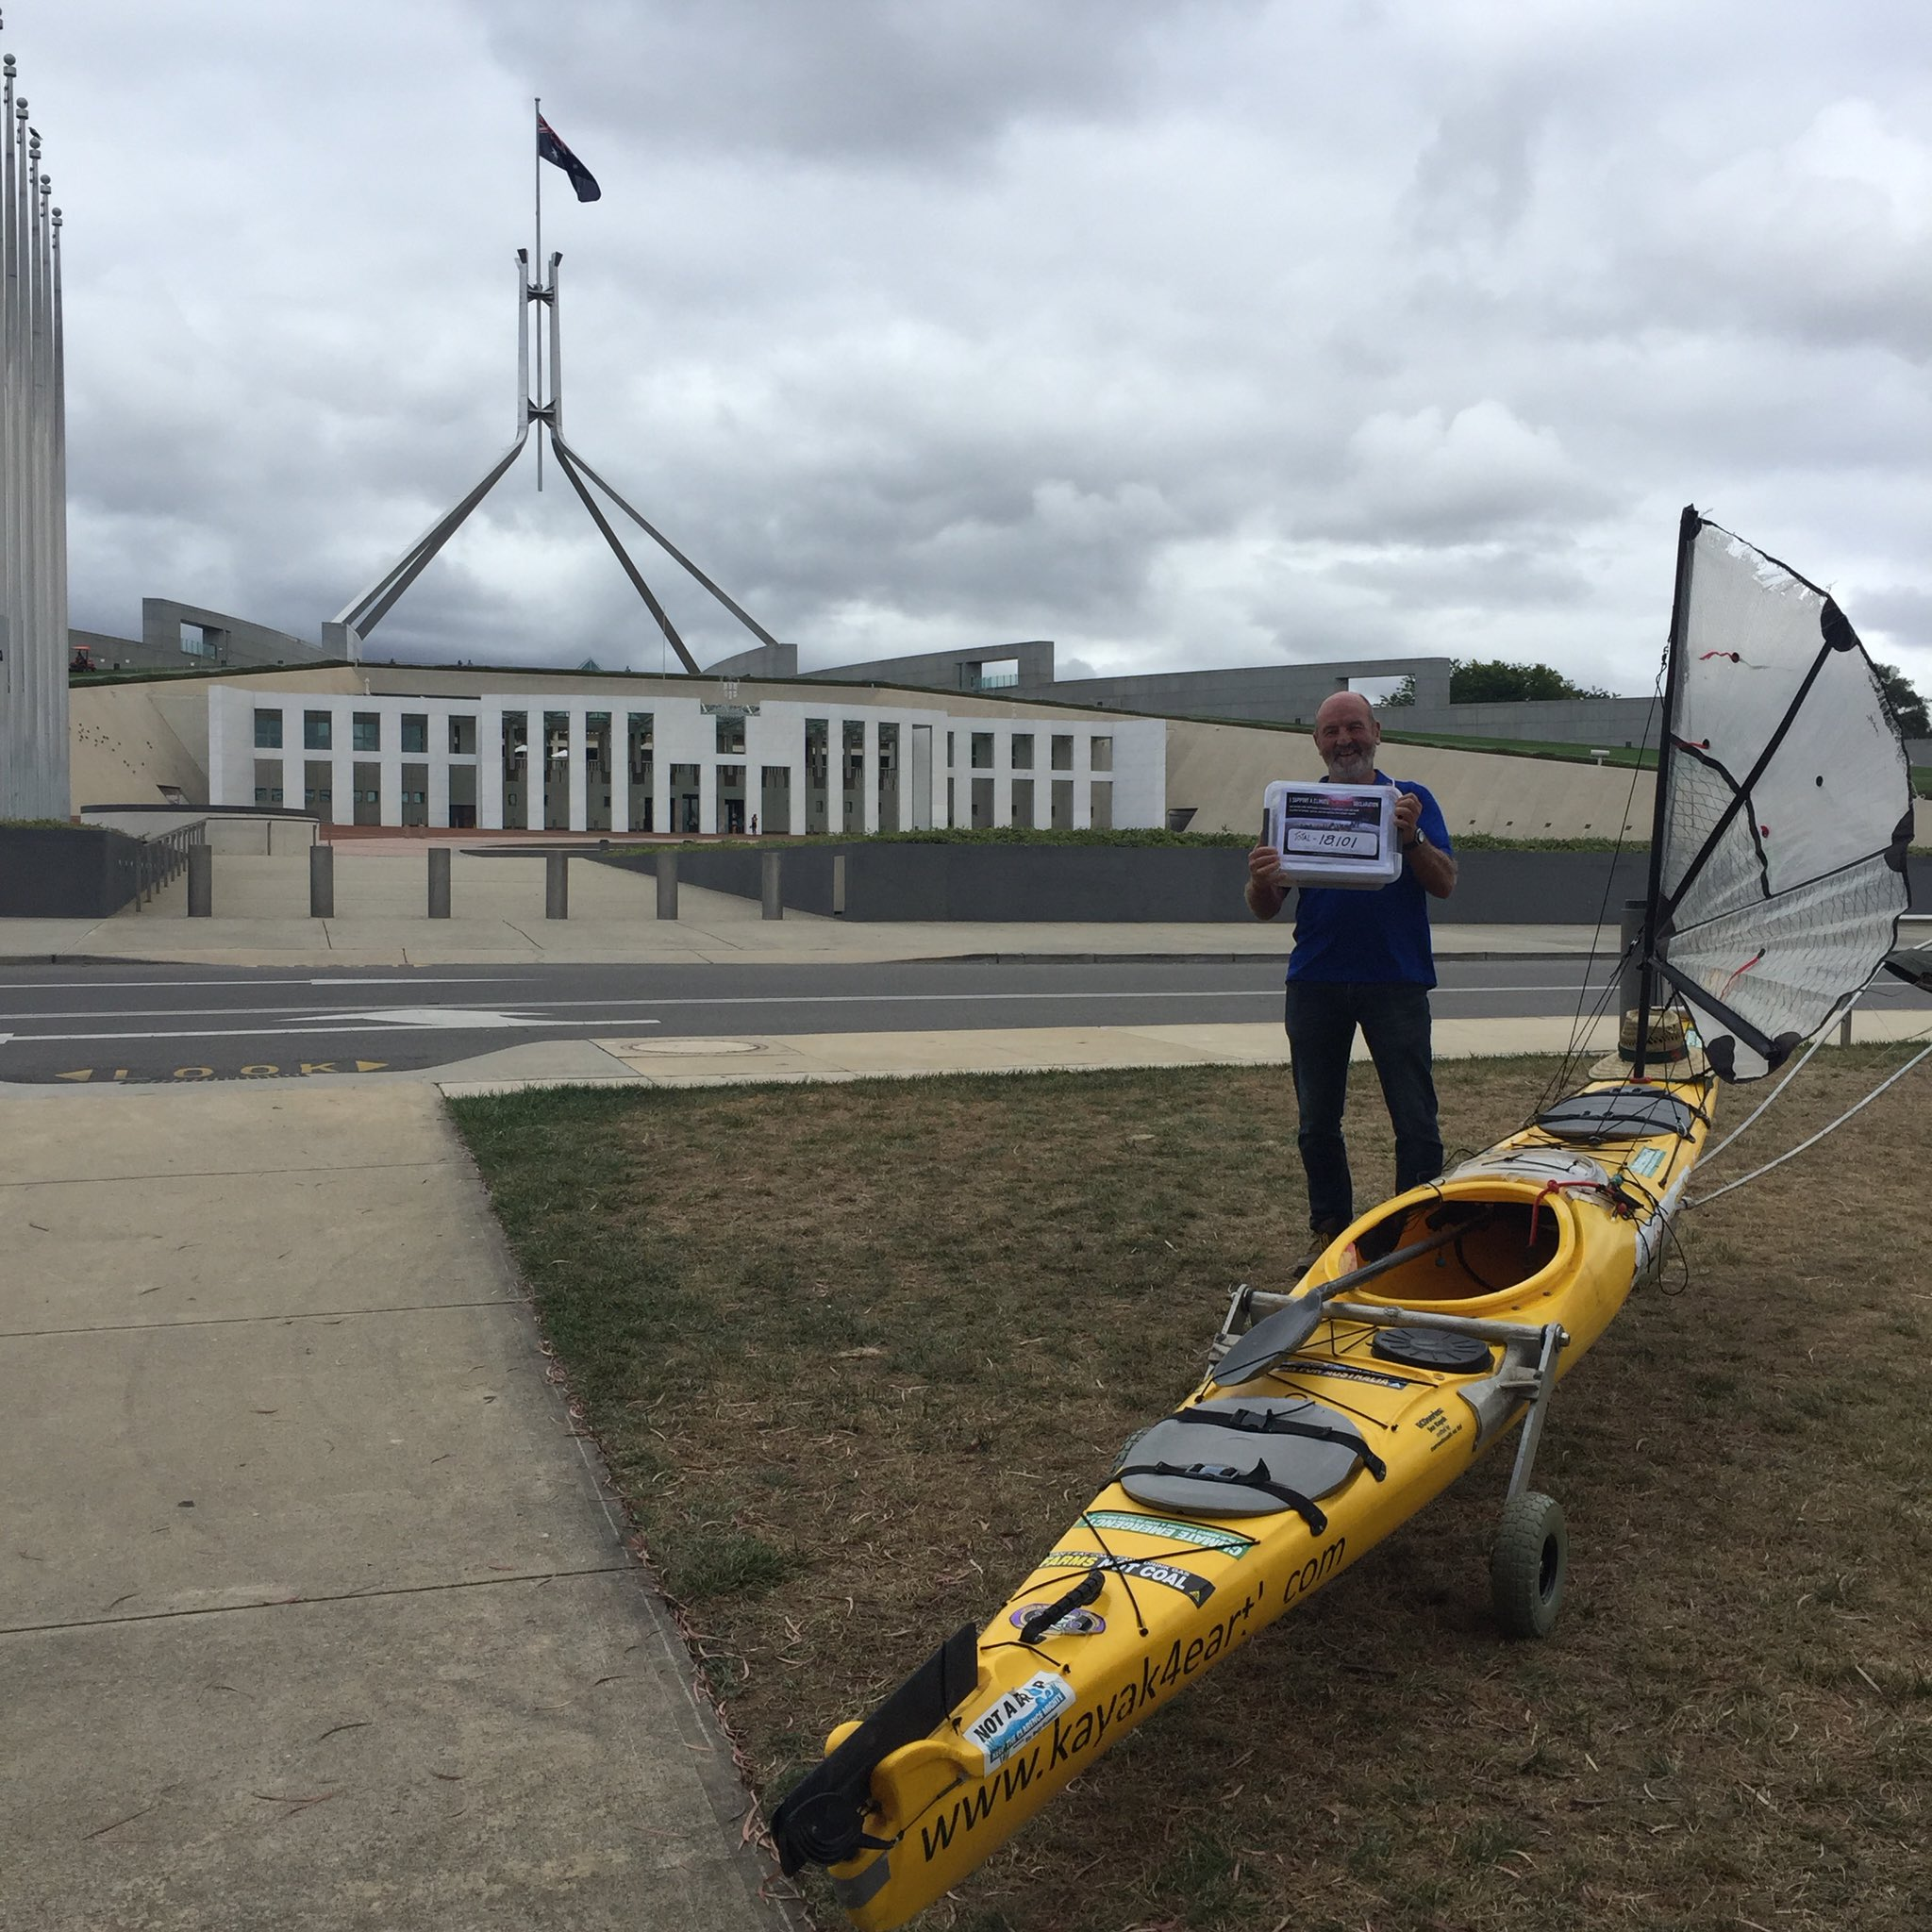 .@kayak4earth ready to hand over >18,000 signatures so far calling for a #ClimateEmergencyDeclaration.  #auspol https://t.co/N9N9mrebf2